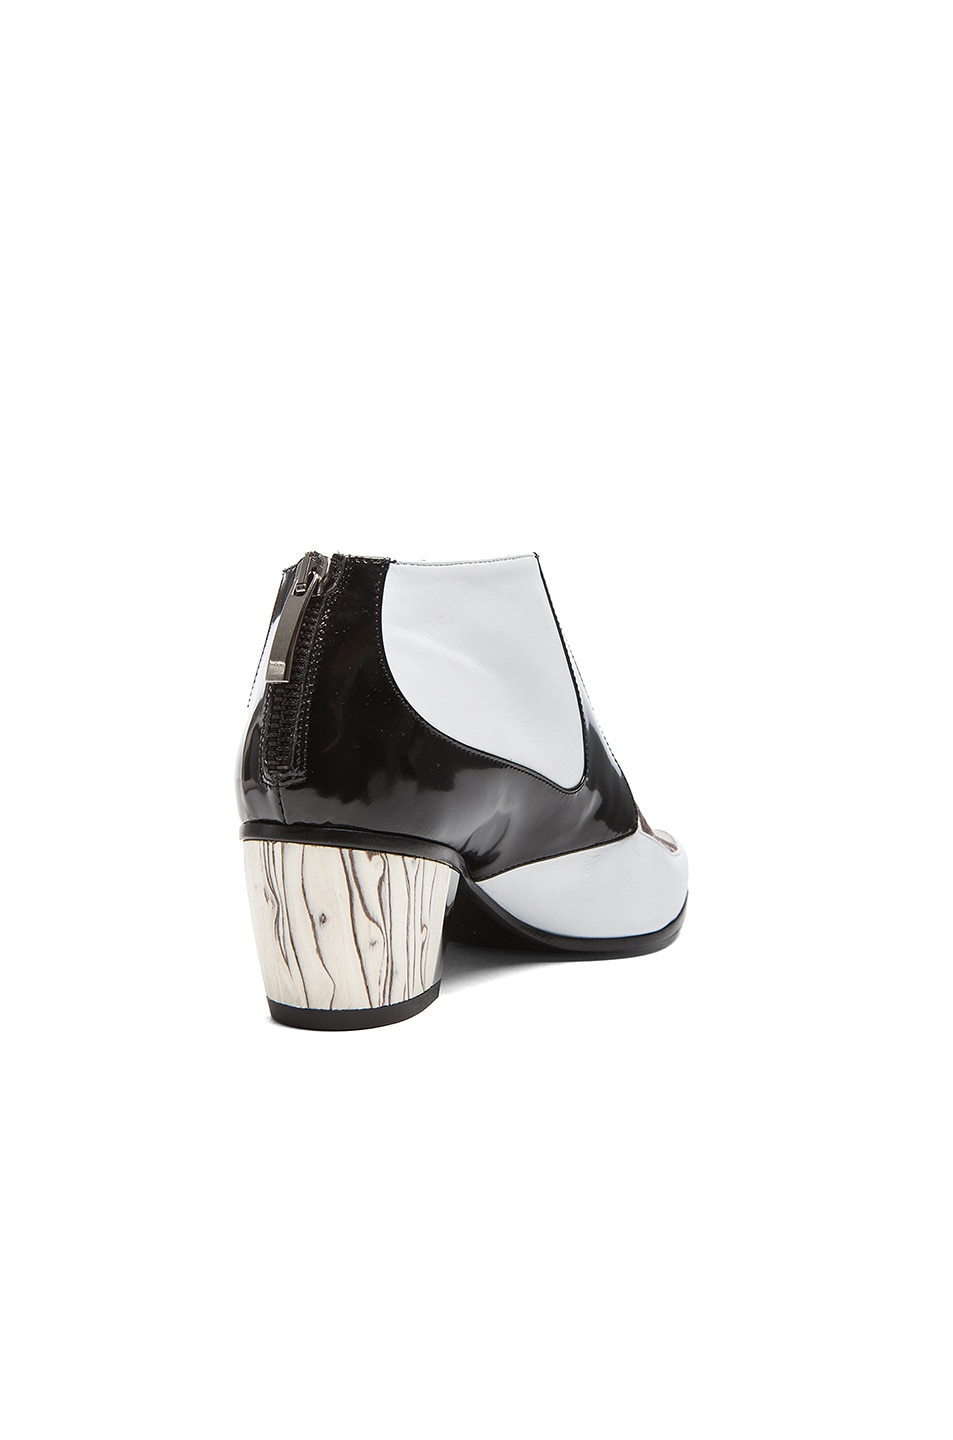 Image 3 of Rodarte Snakeskin Embossed Leather Booties in White, Black, & Grey